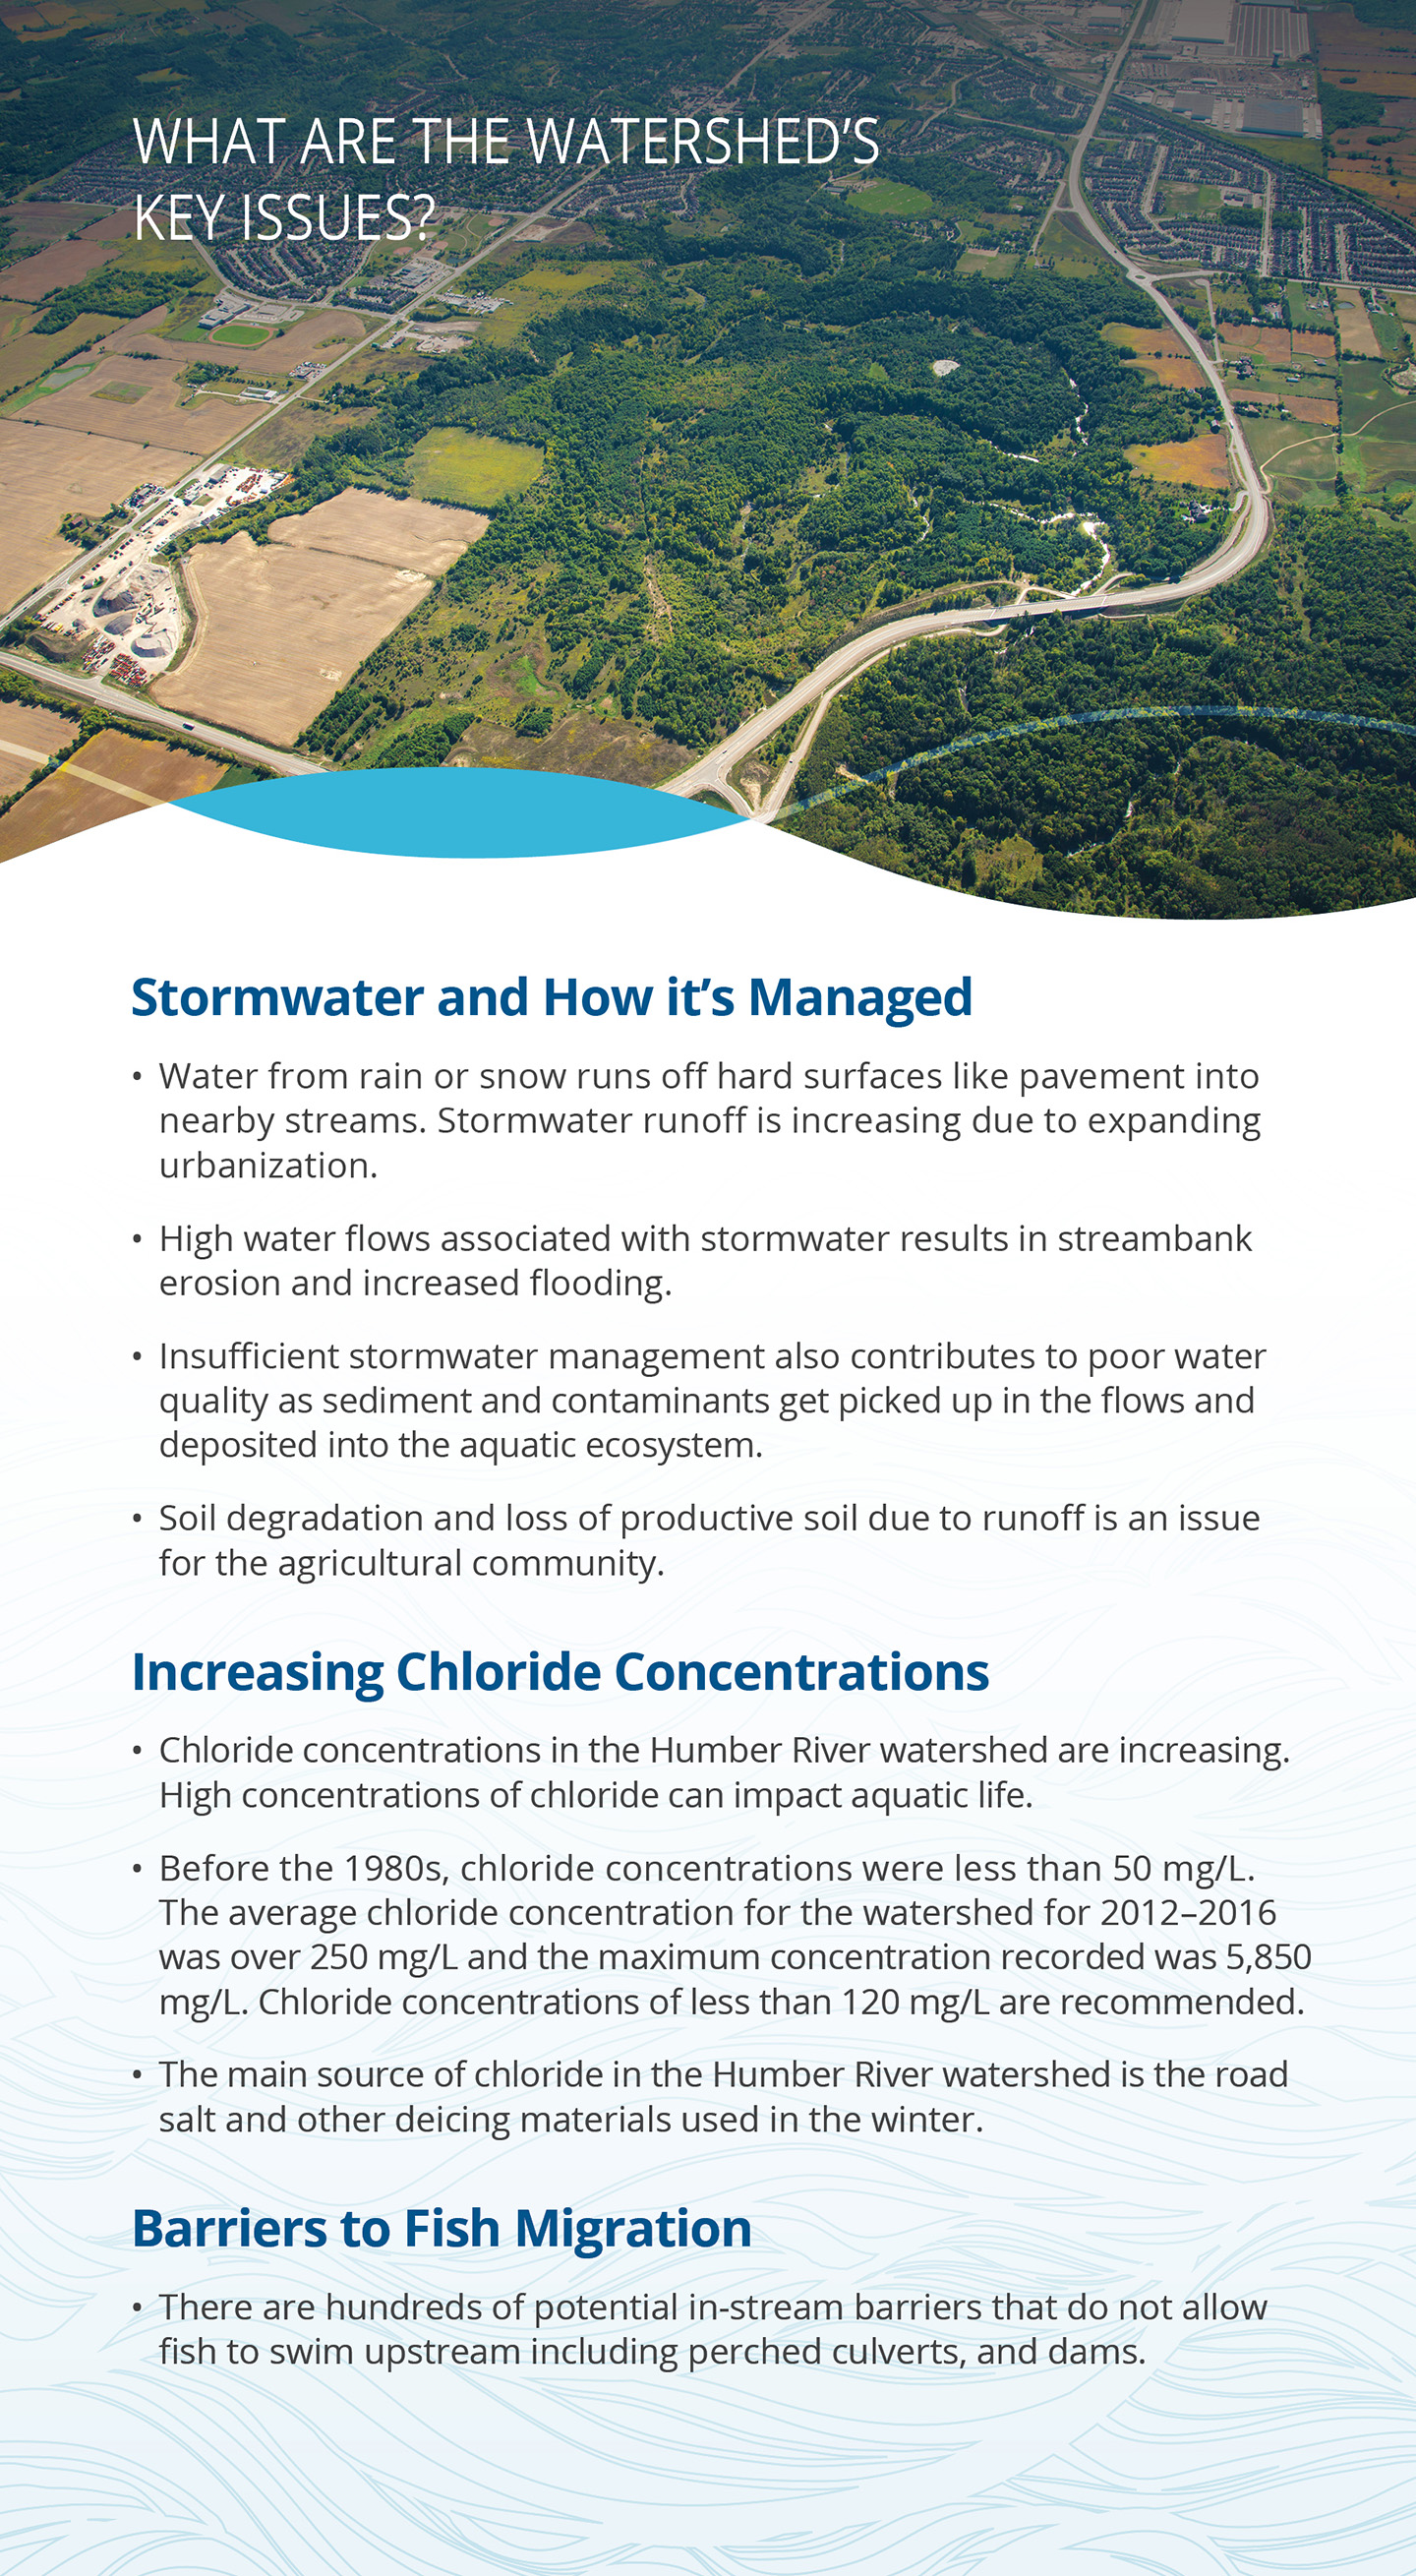 key issues panel of Humber River watershed report card